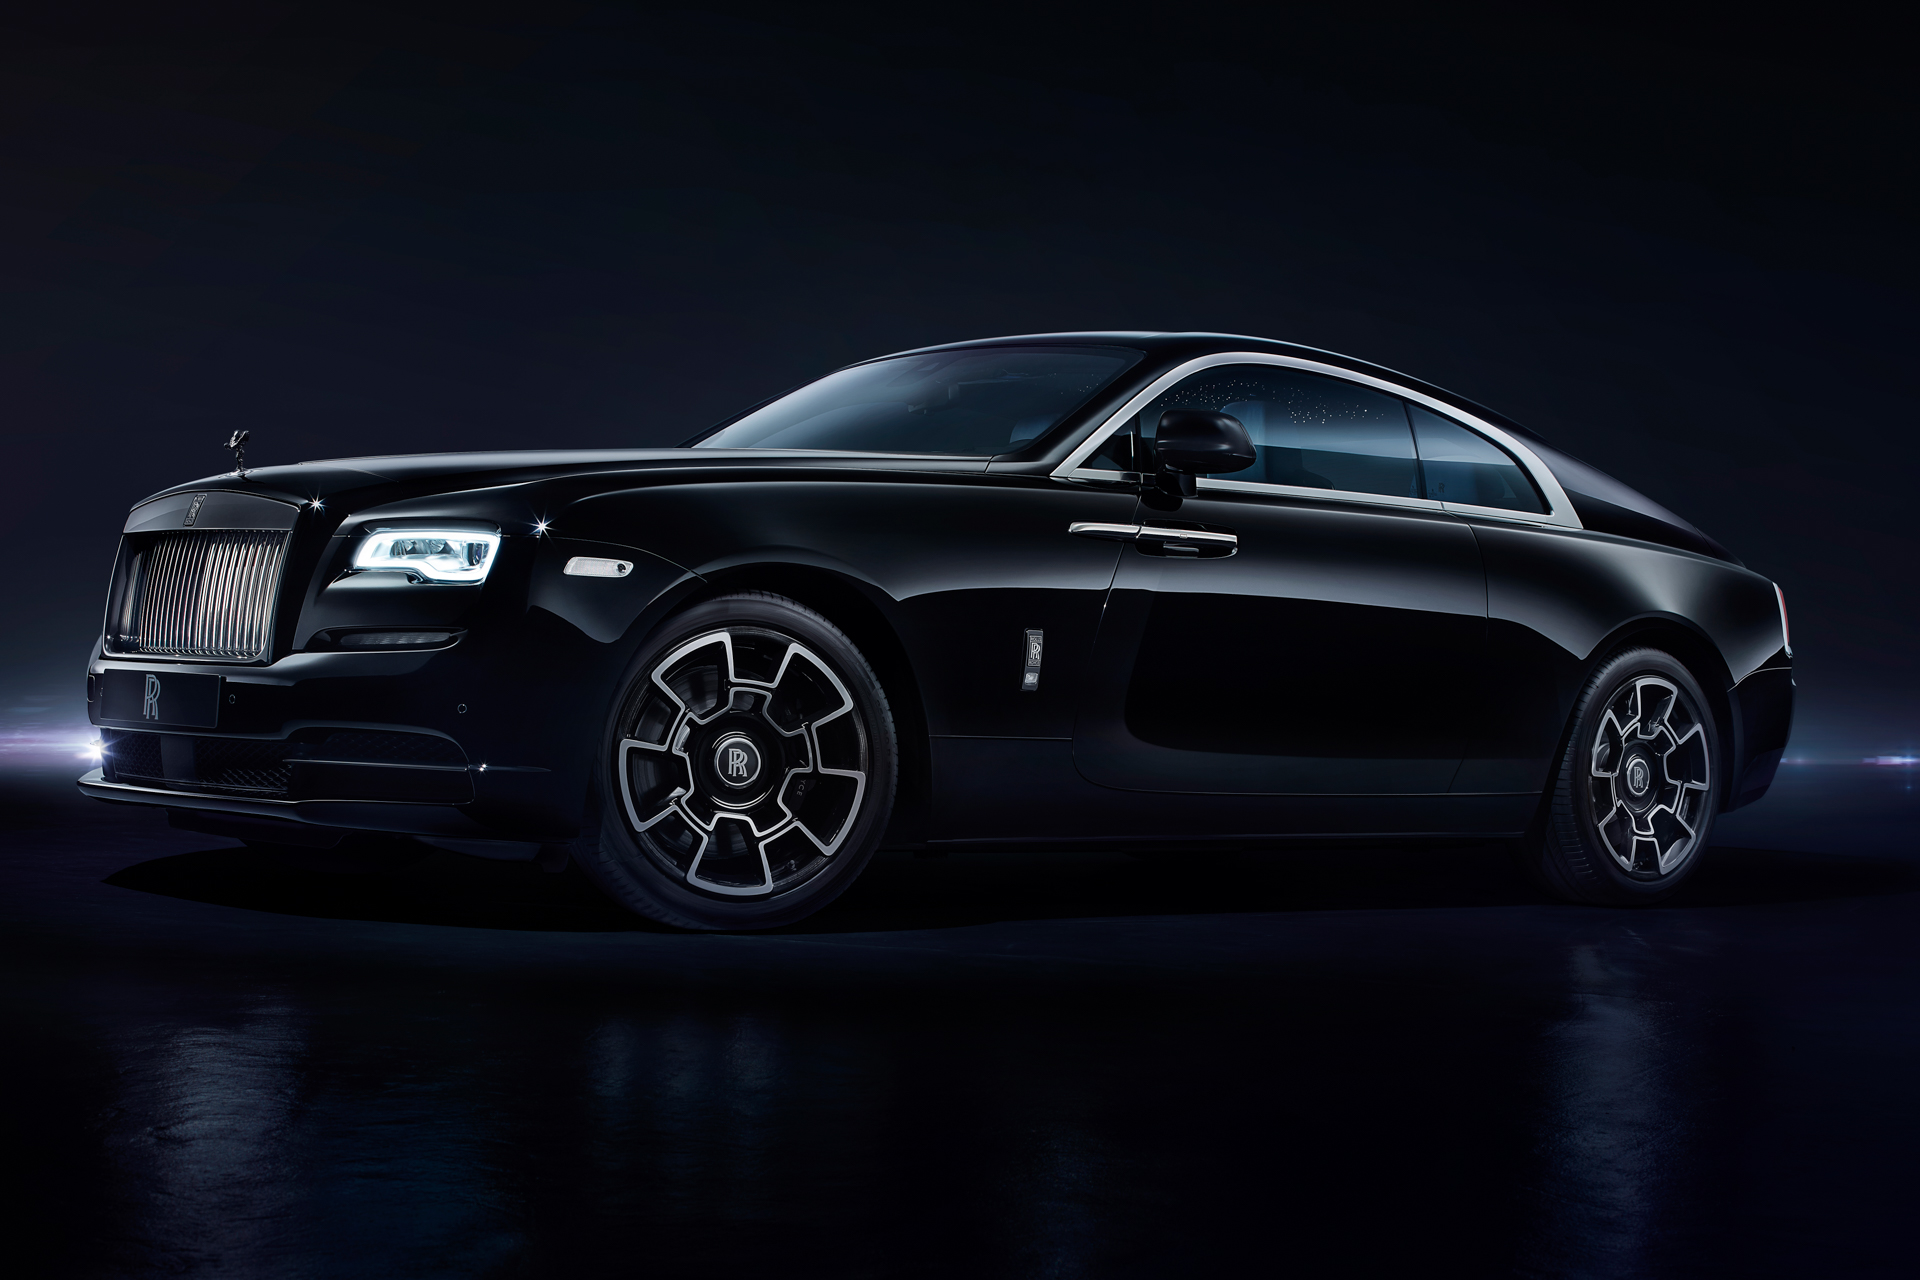 Chantilly 2016 - preview - Rolls-Royce Wraith Black Badge